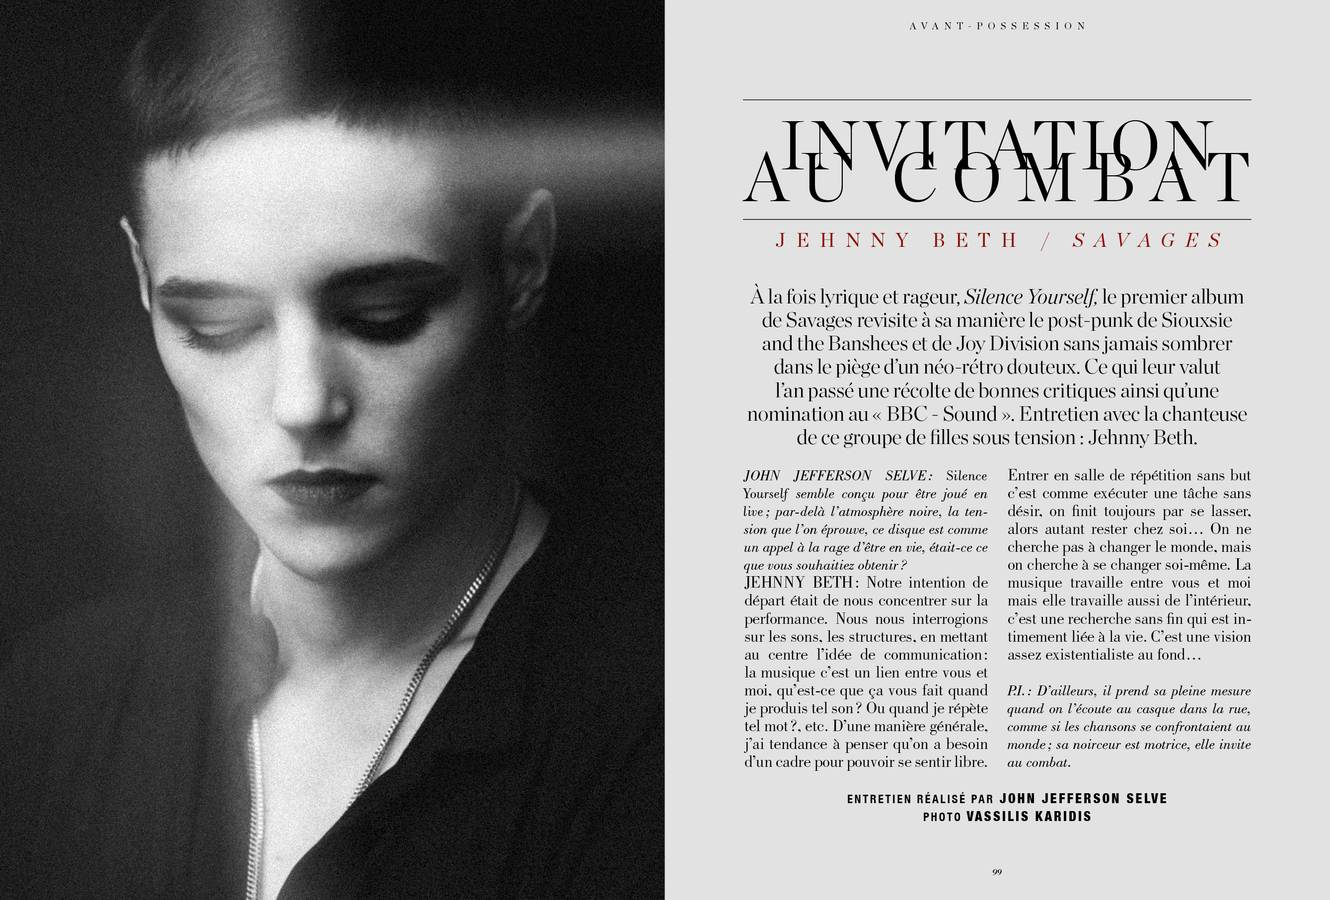 Interview de Jehnny Beth, Savages, Invitation au combat, photographie de Vassilis Karidis